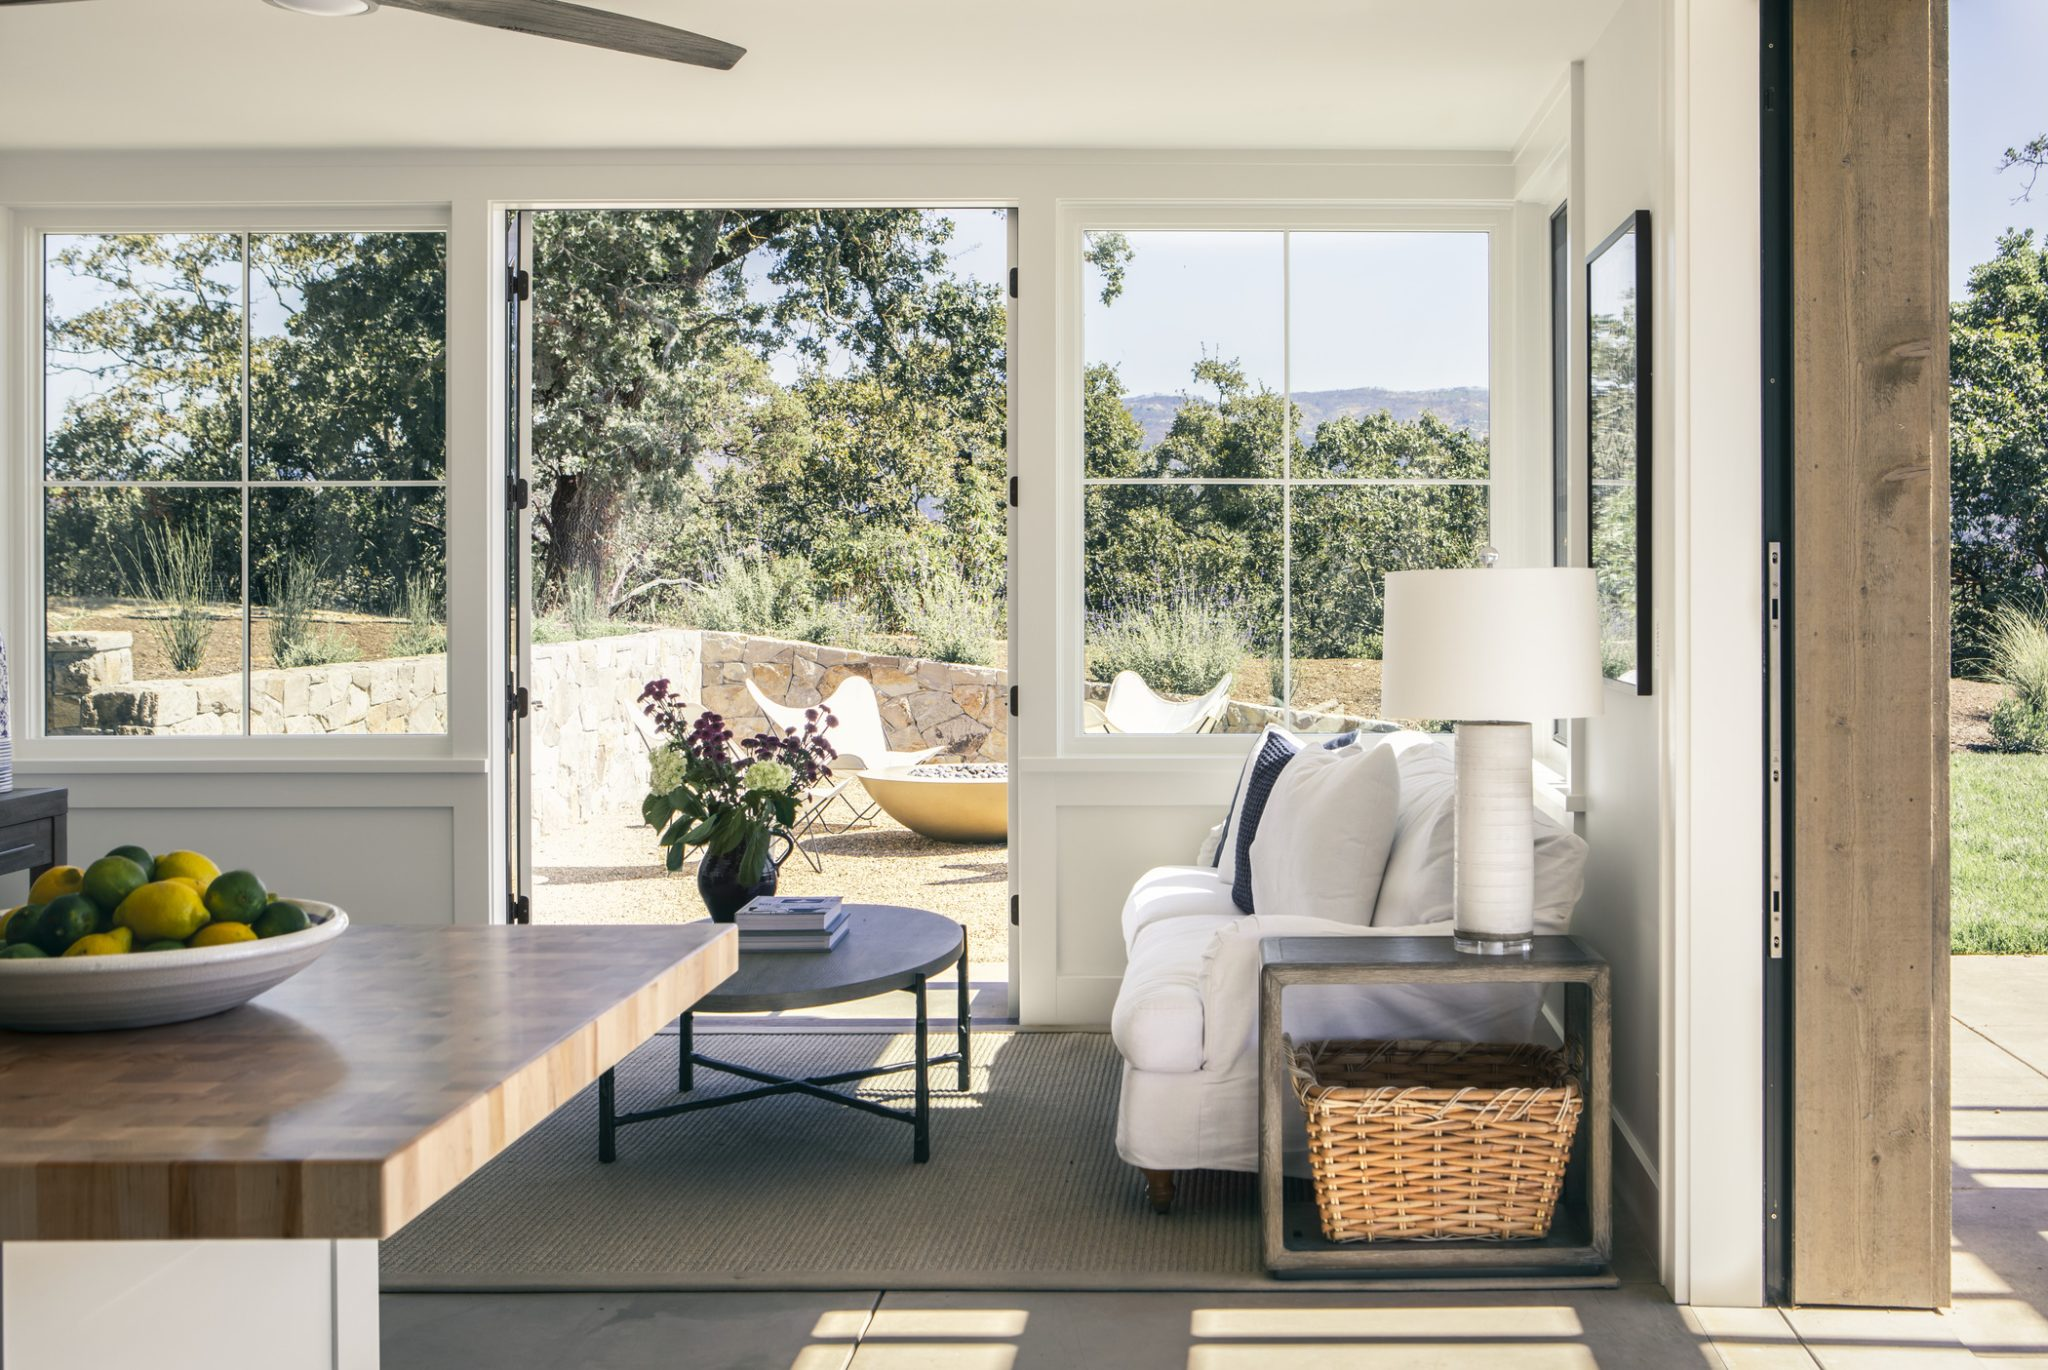 The poolhouse is more casual in personality, and it offers plenty of space for guests.